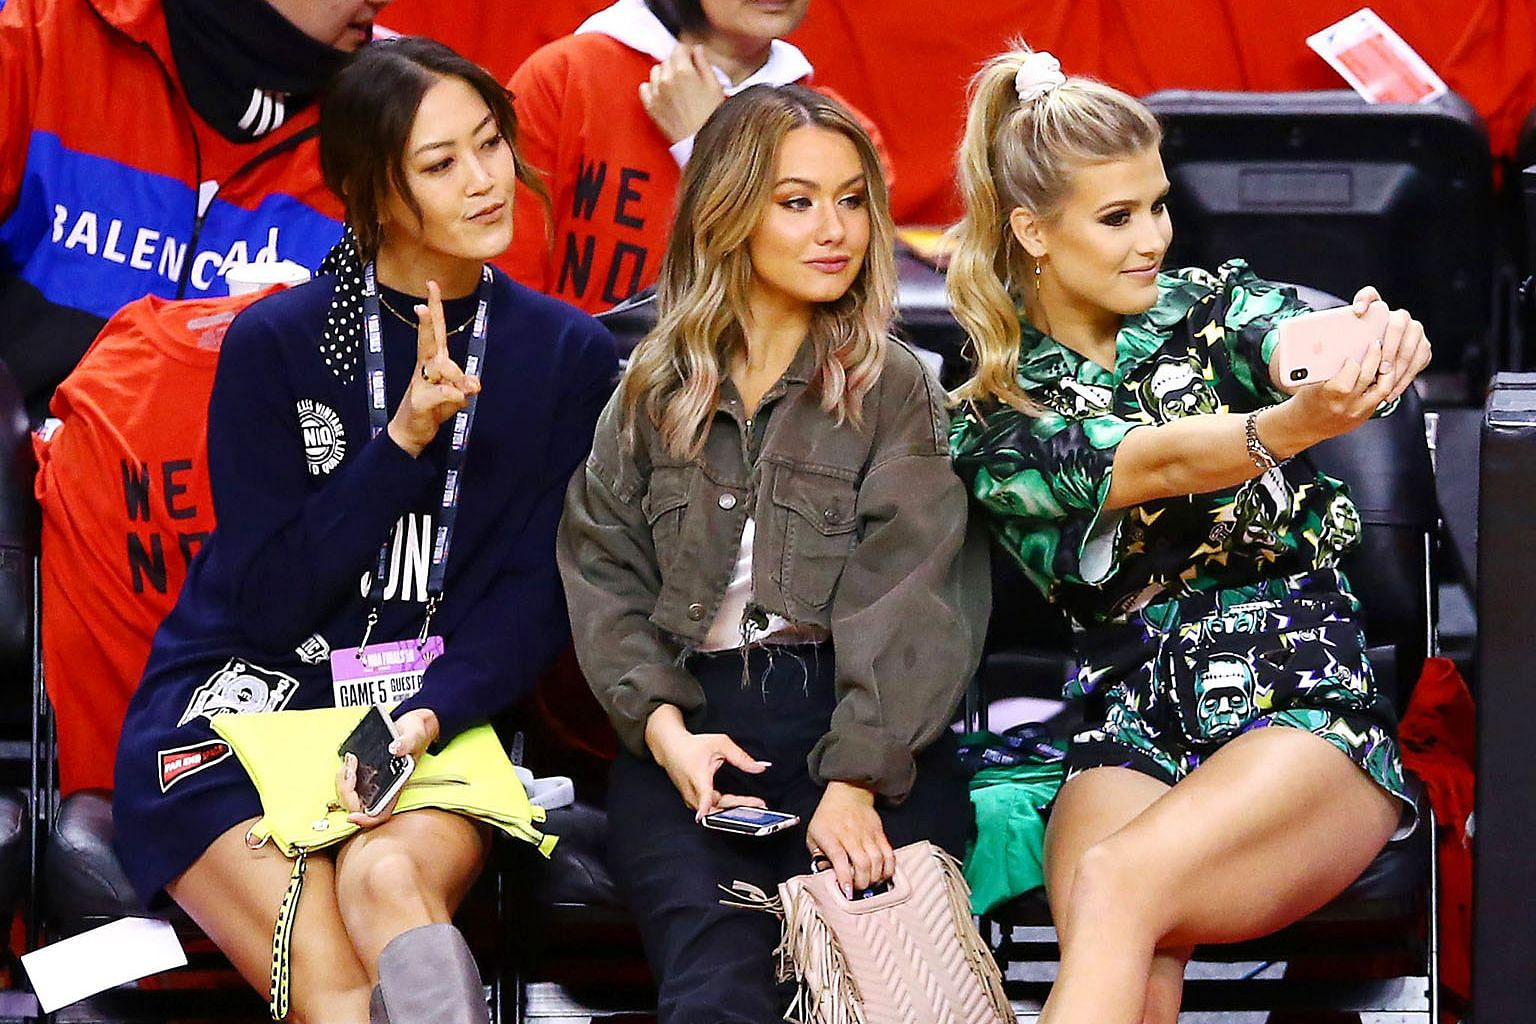 Michelle Wie, cousins Celeste and Eugenie Bouchard taking a wefie during Game 5 of the NBA Finals between the Golden State Warriors and the Toronto Raptors at the Scotiabank Arena in Toronto on June 10. PHOTO: AGENCE FRANCE-PRESSE